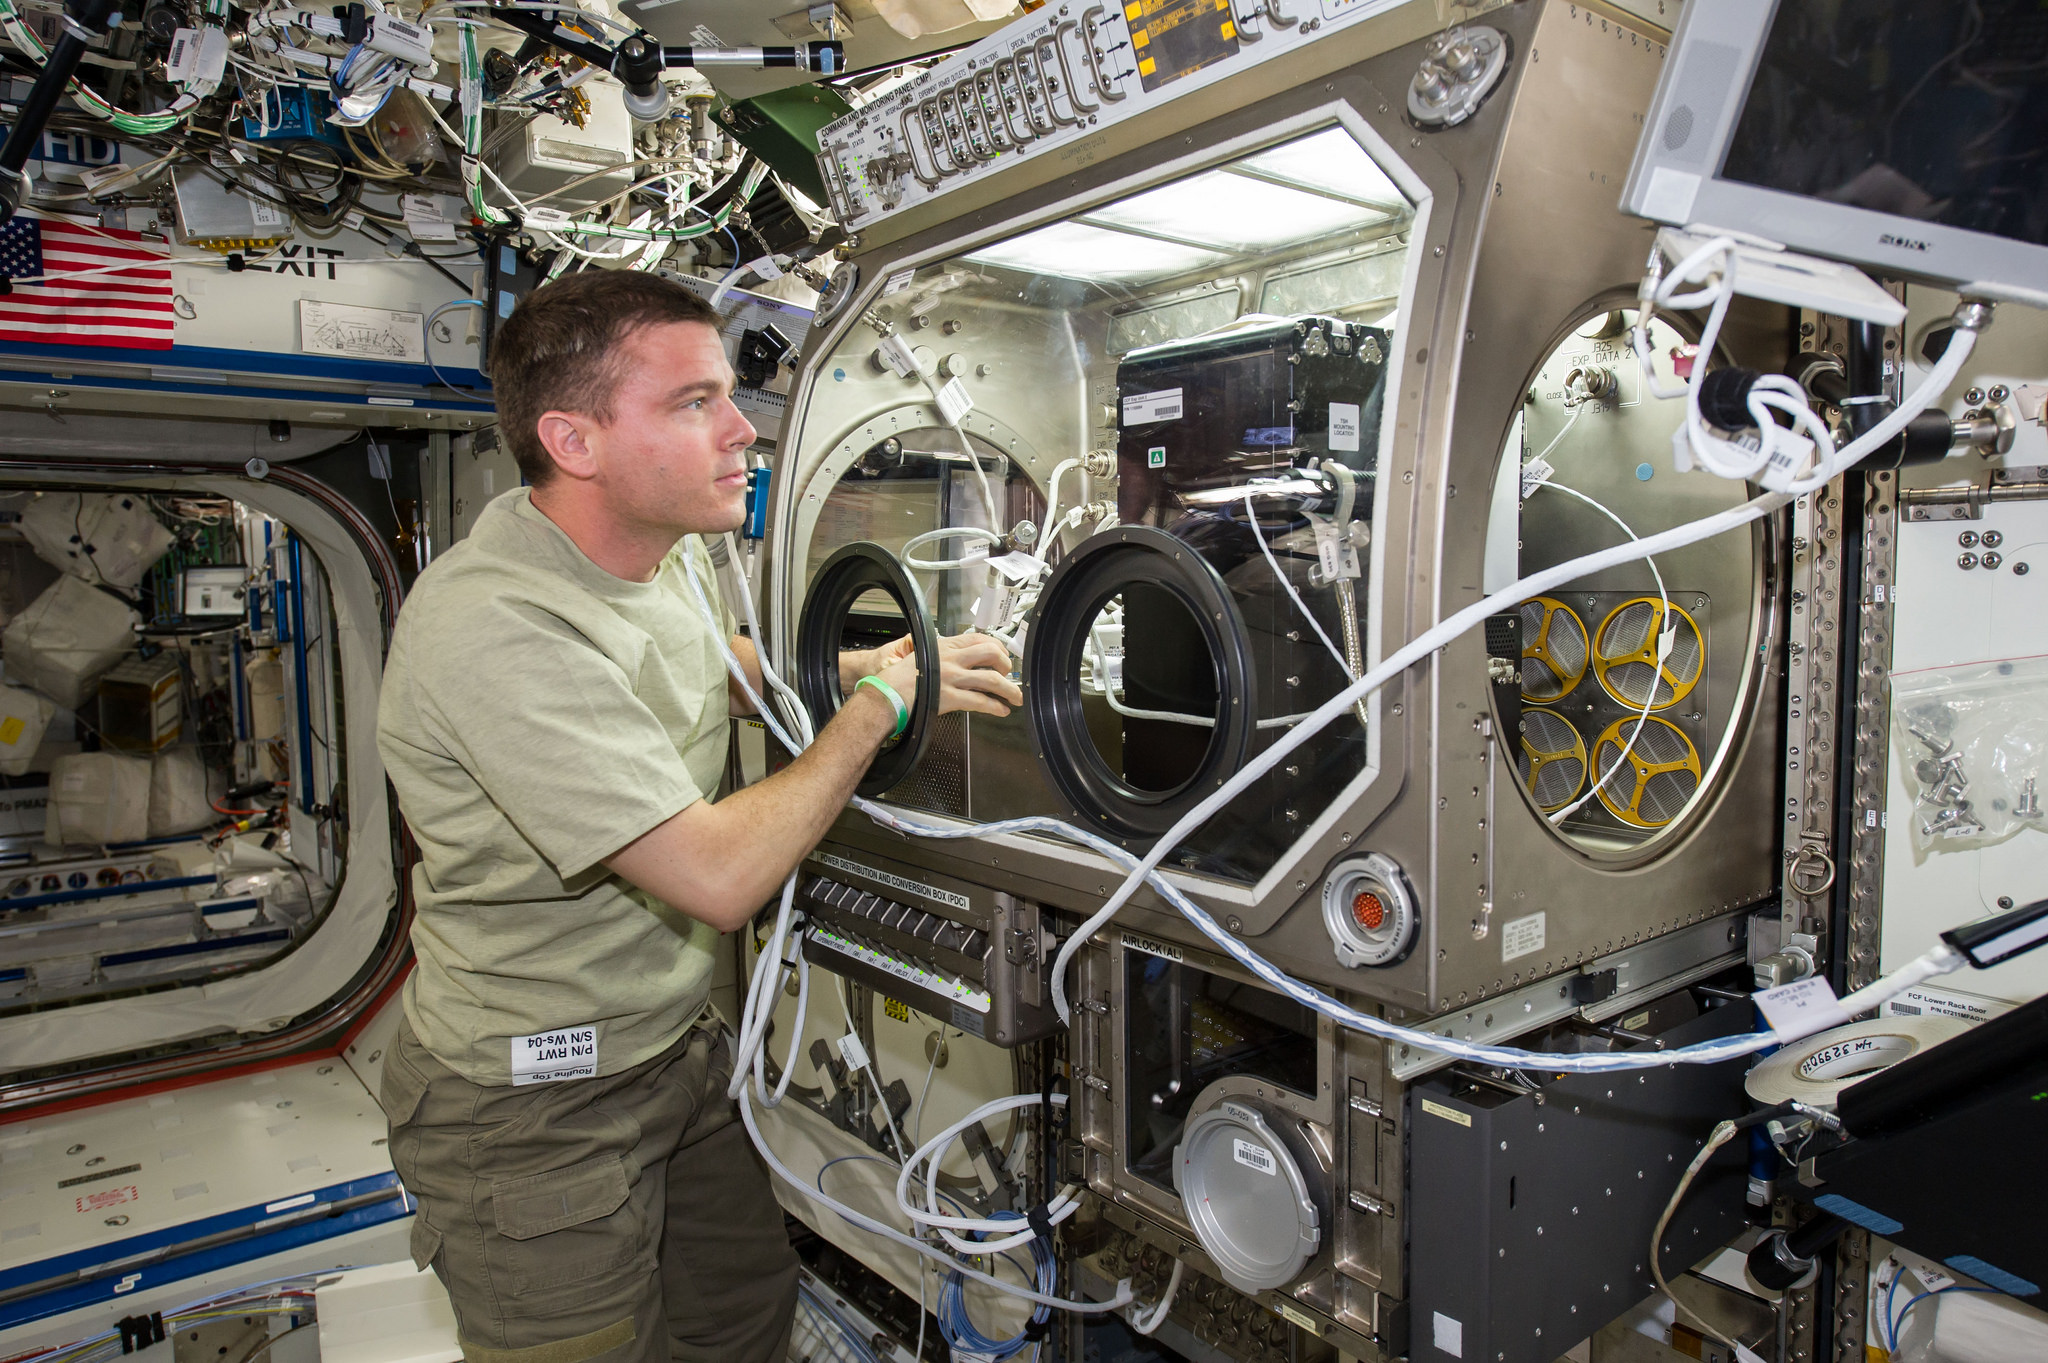 NASA astronaut Reid Wiseman aboard the International Space Station. Credit: NASA